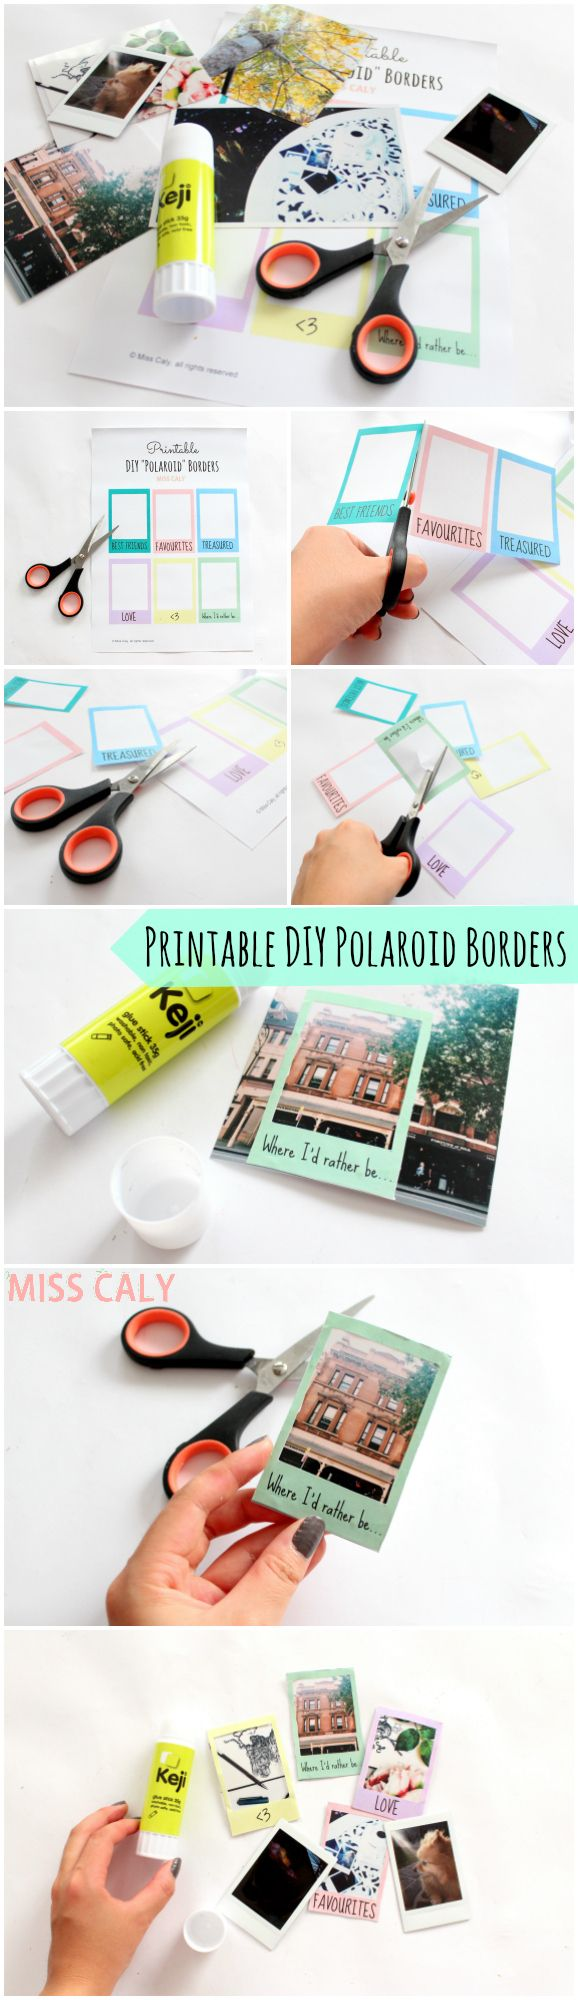 Free printable DIY polaroid borders - Miss Caly